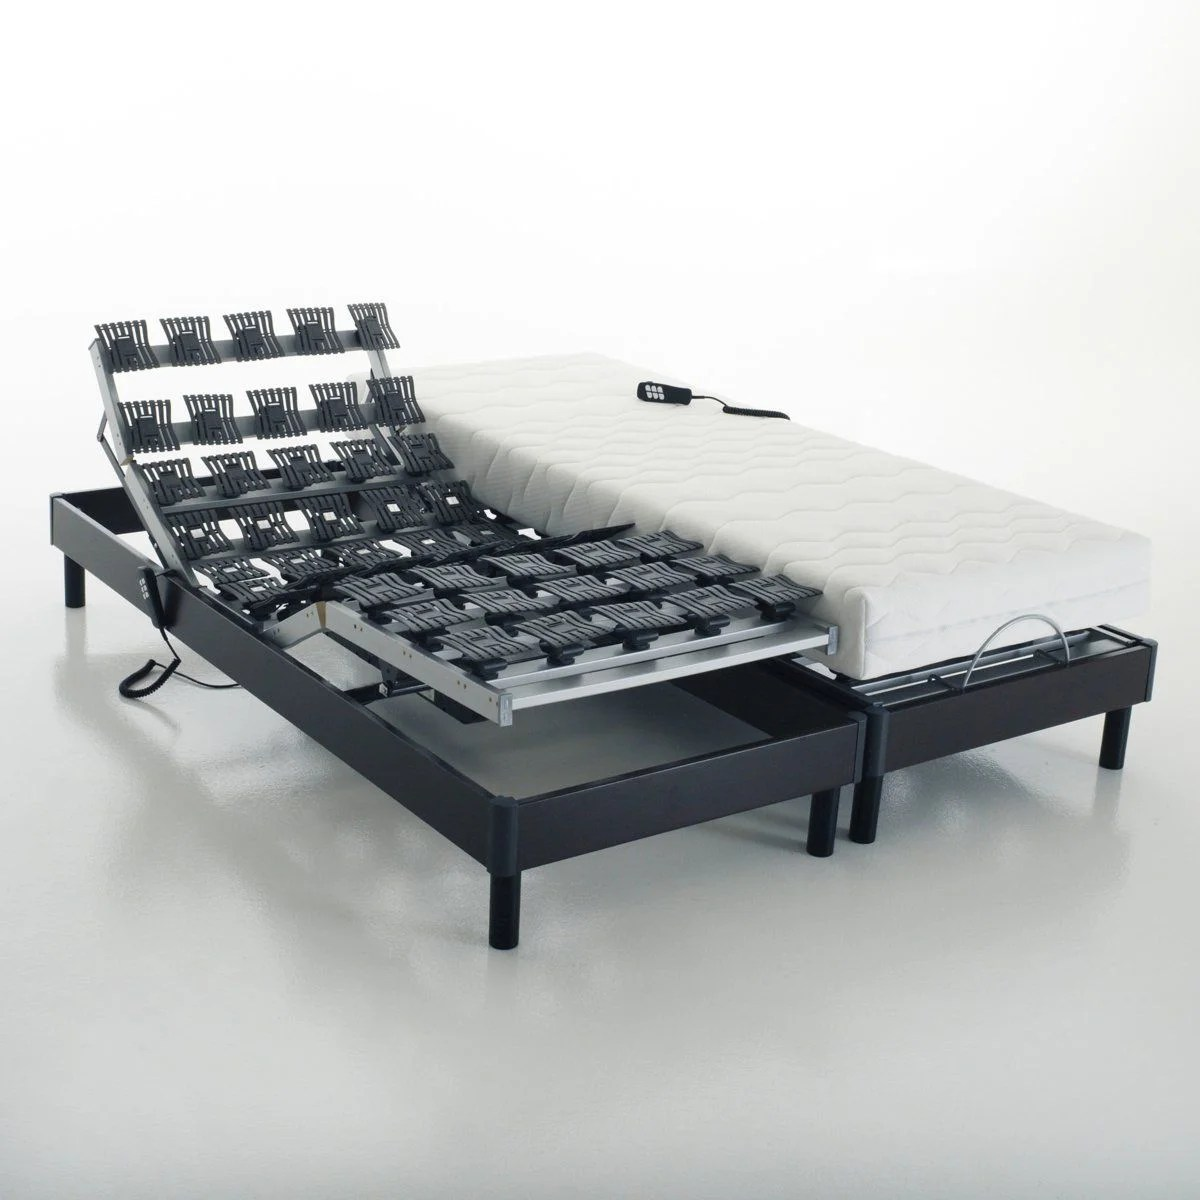 ensemble de relaxation 5 plans de couchage matelas